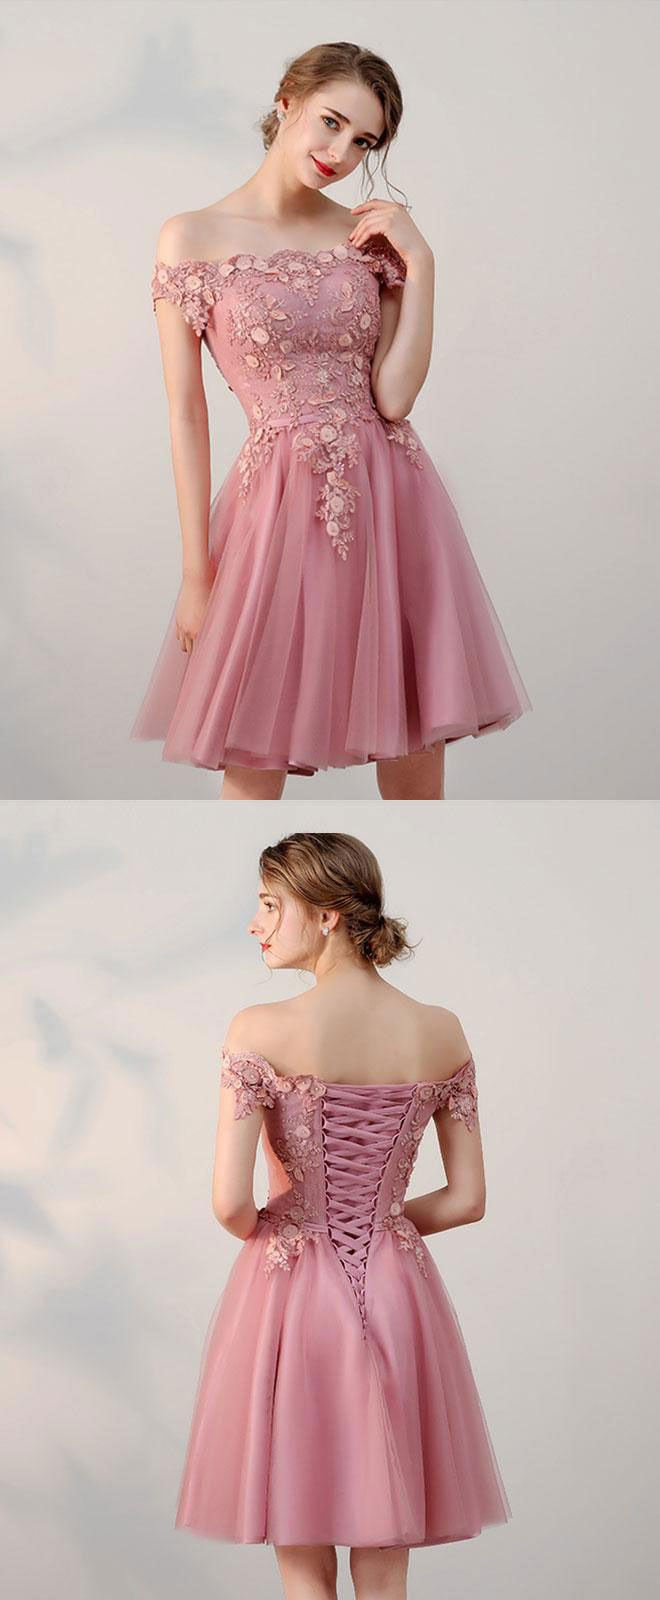 Pink lace tulle short prom dress, pink evening dresses | Vestiditos ...